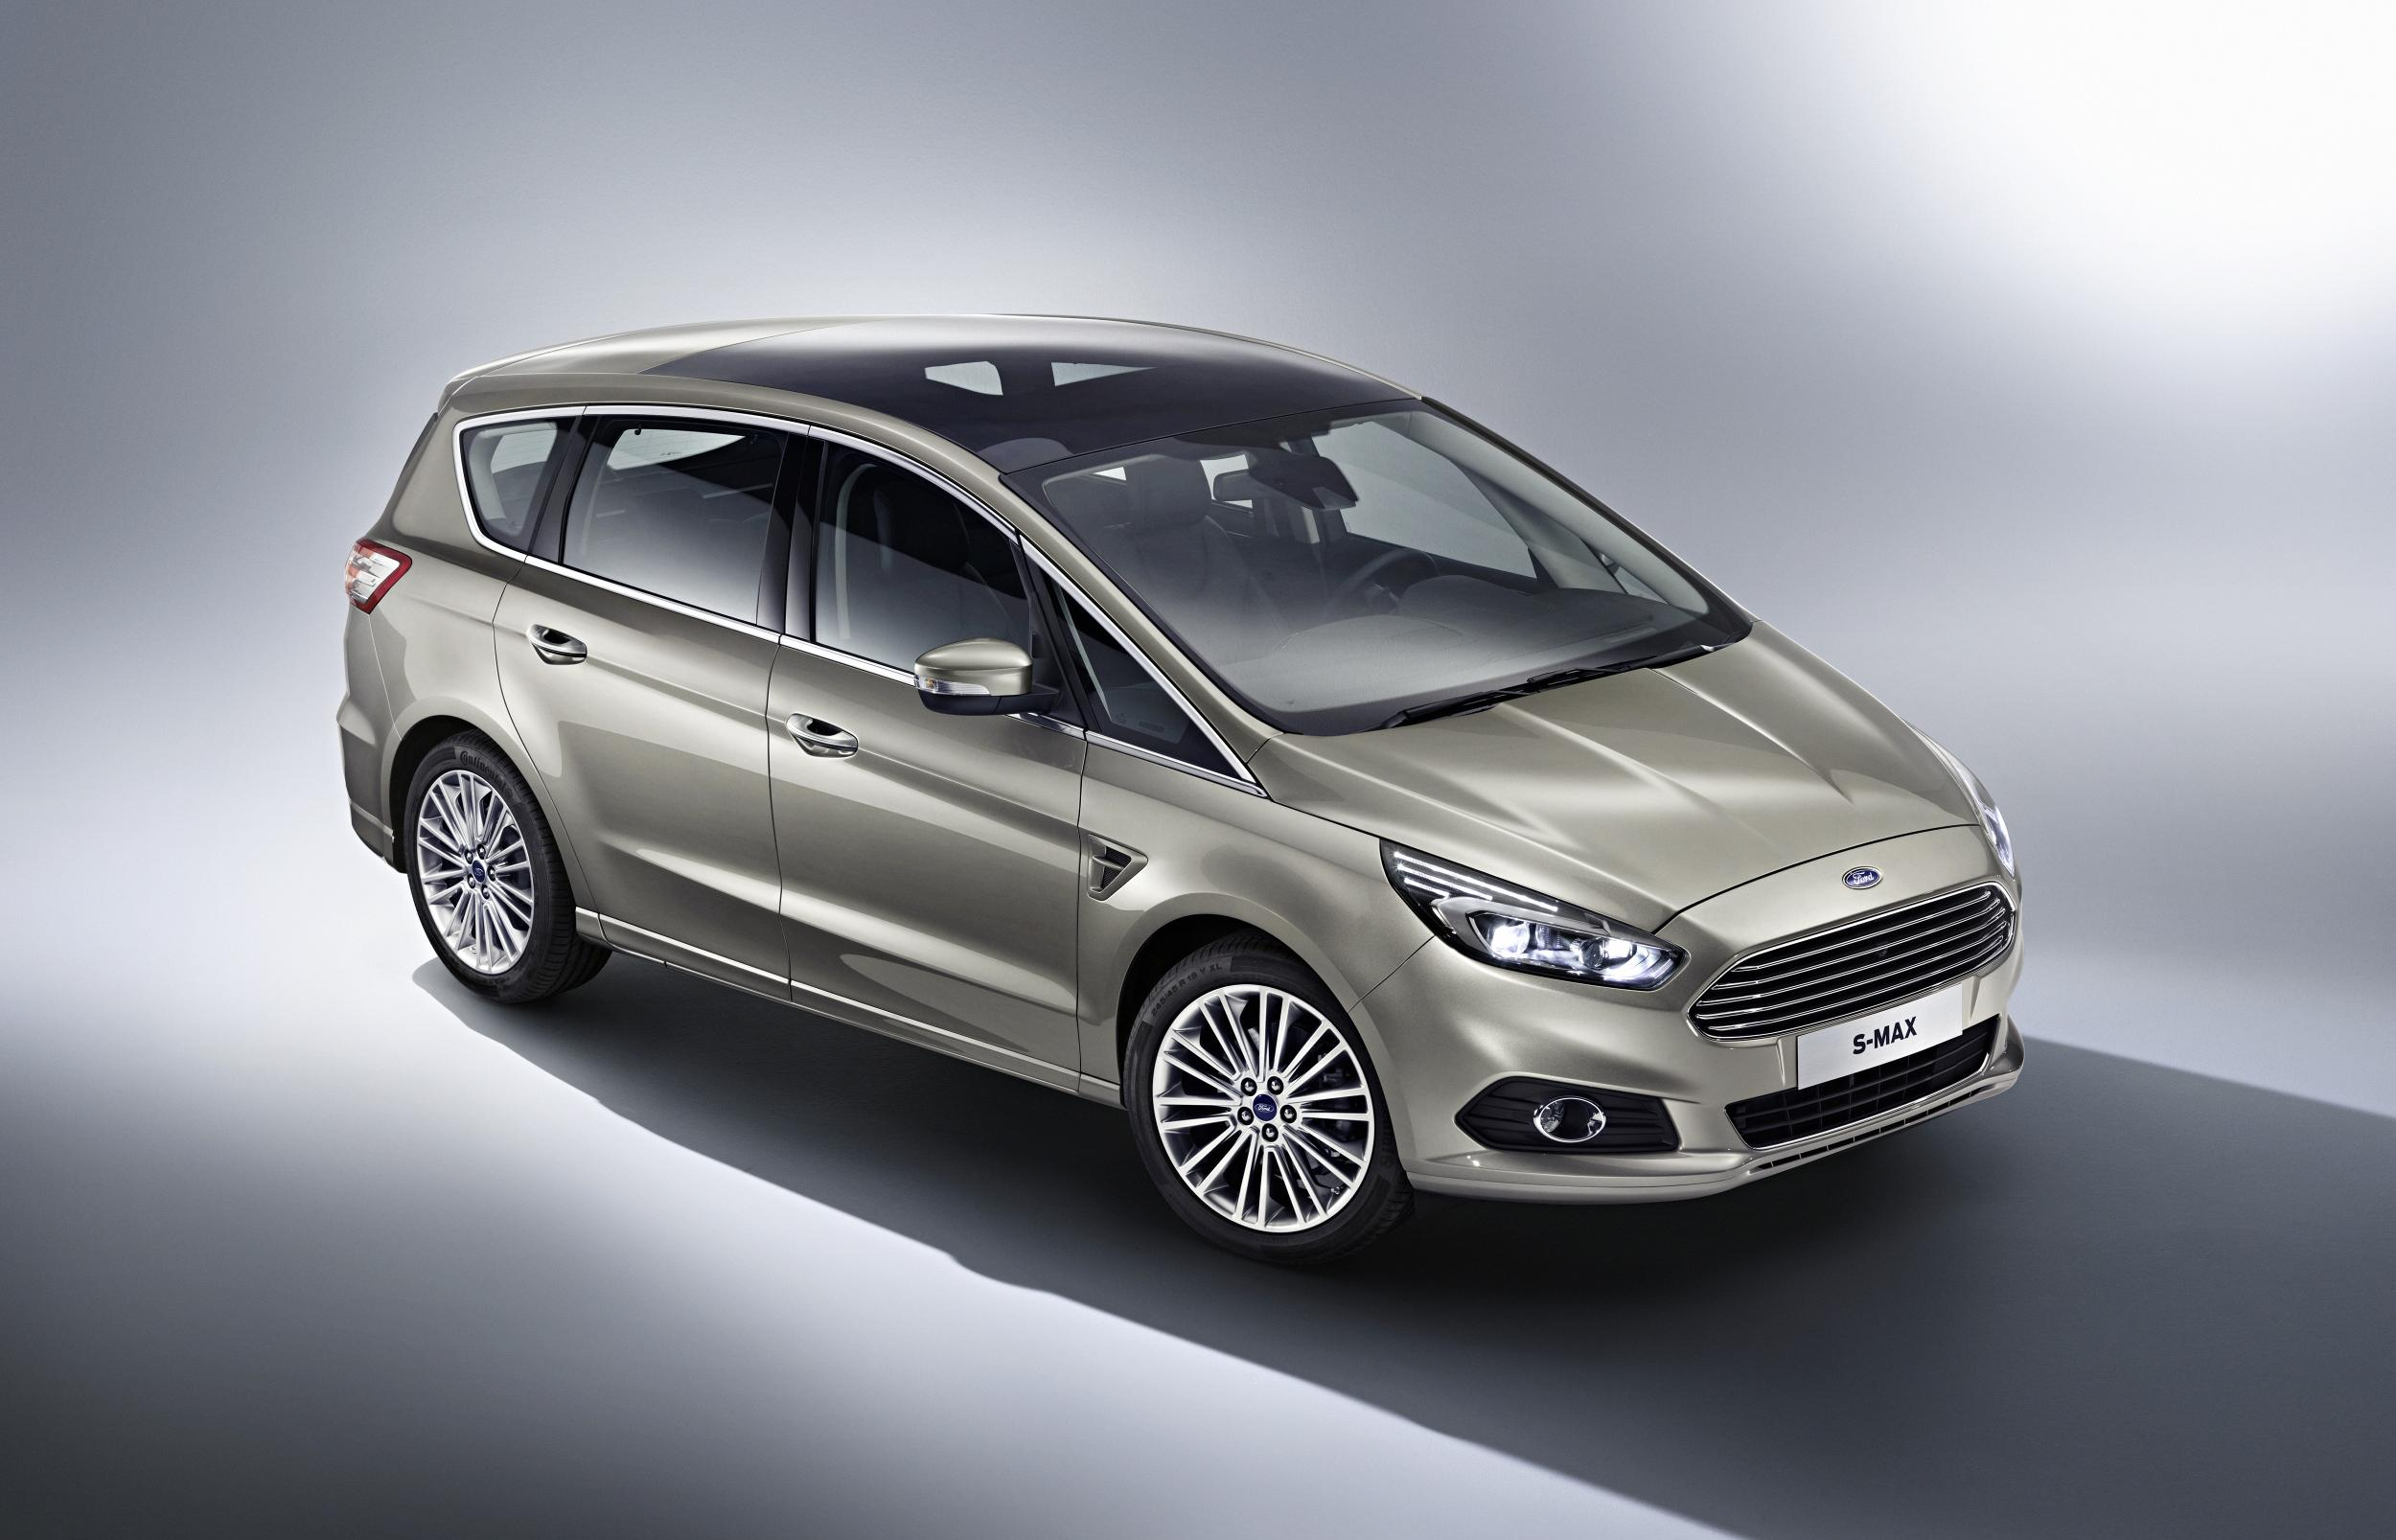 Ford S-Max 2.3 2013 photo - 11